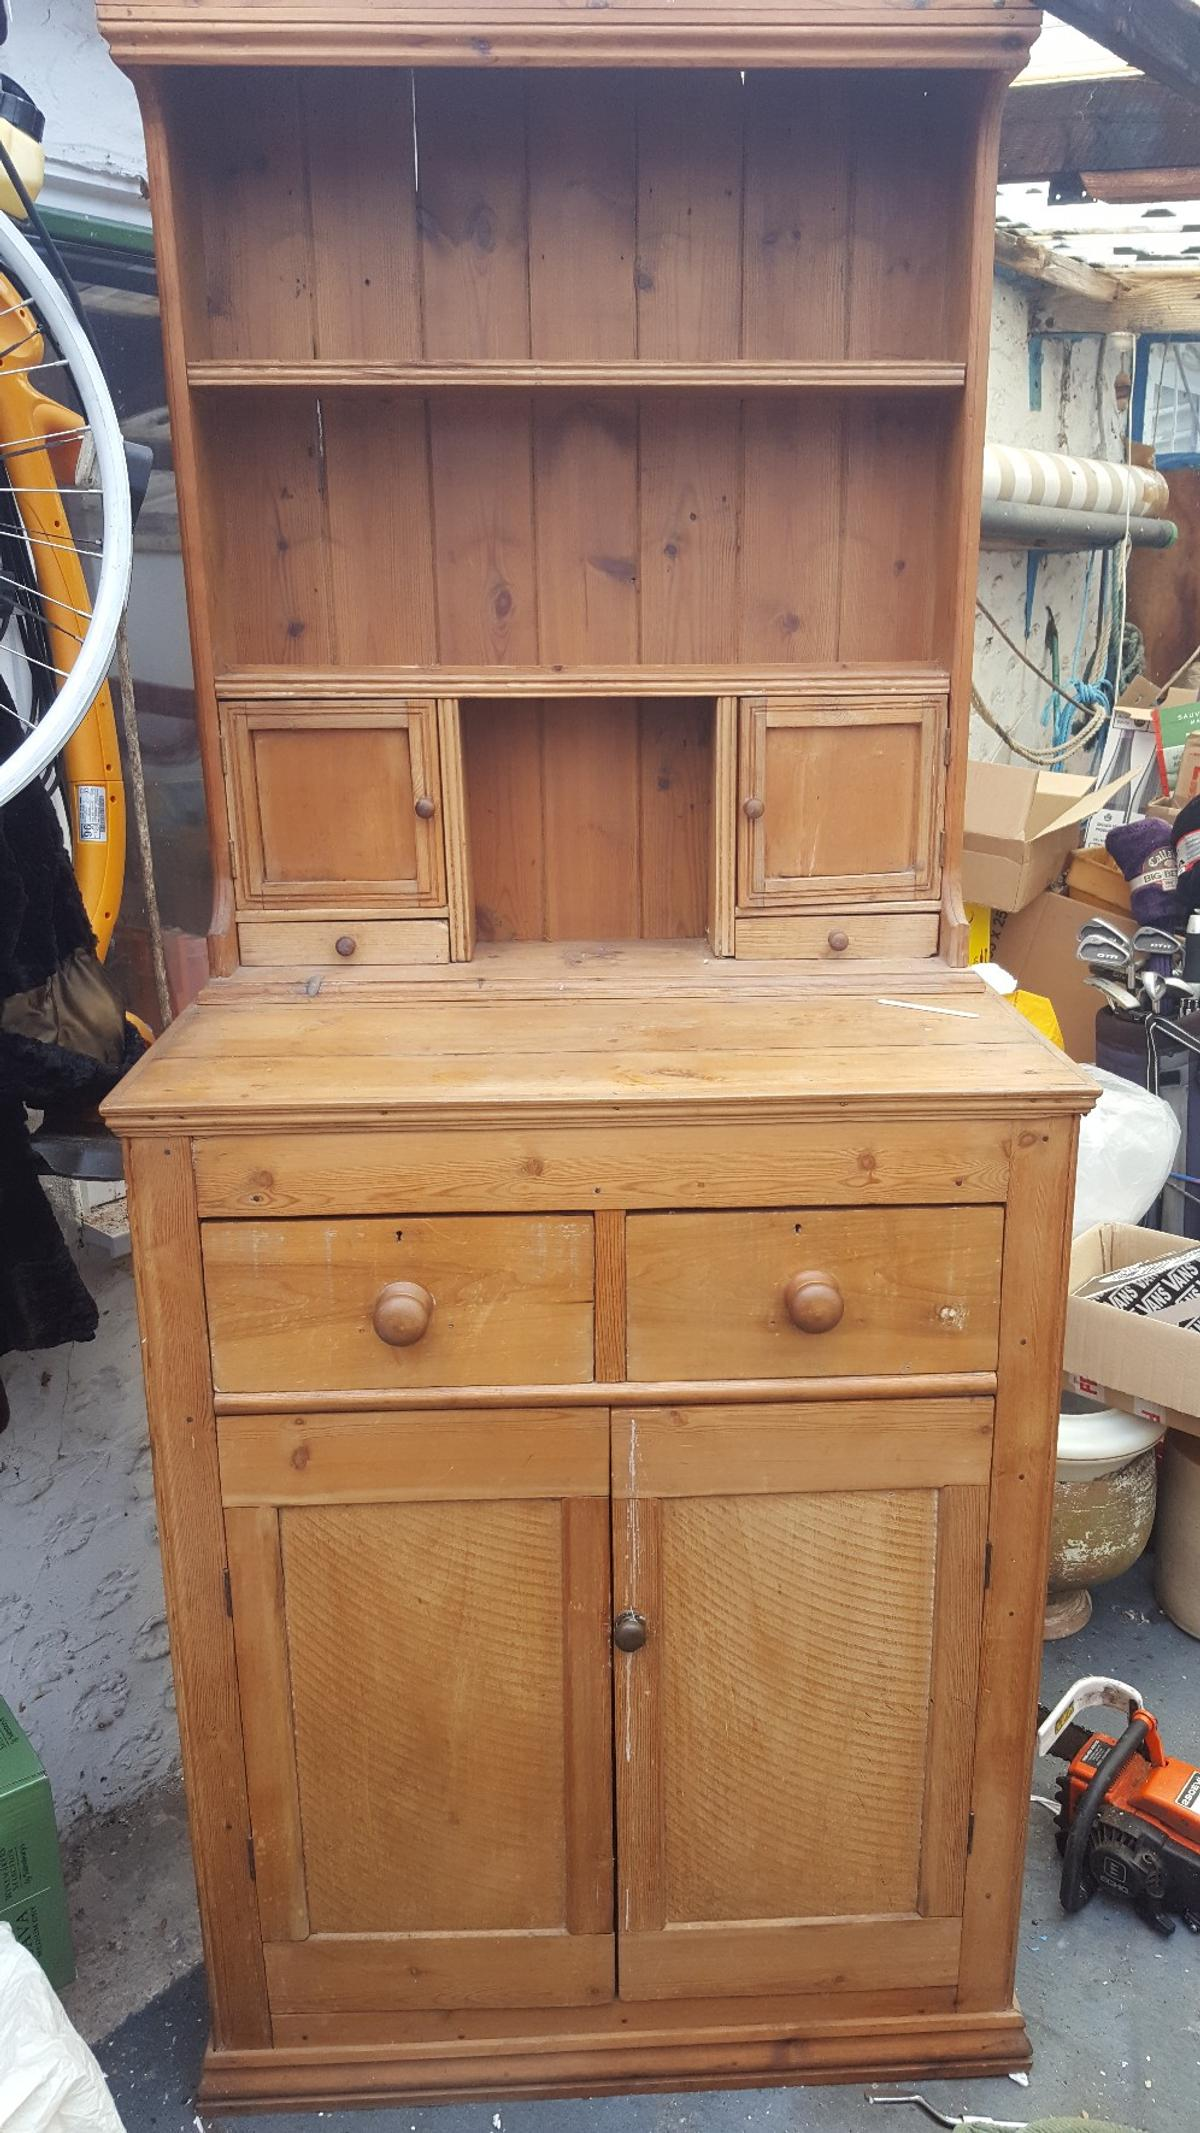 Picture of: Antique Pine Dresser Sold In Tn29 Shepway For 150 00 For Sale Shpock